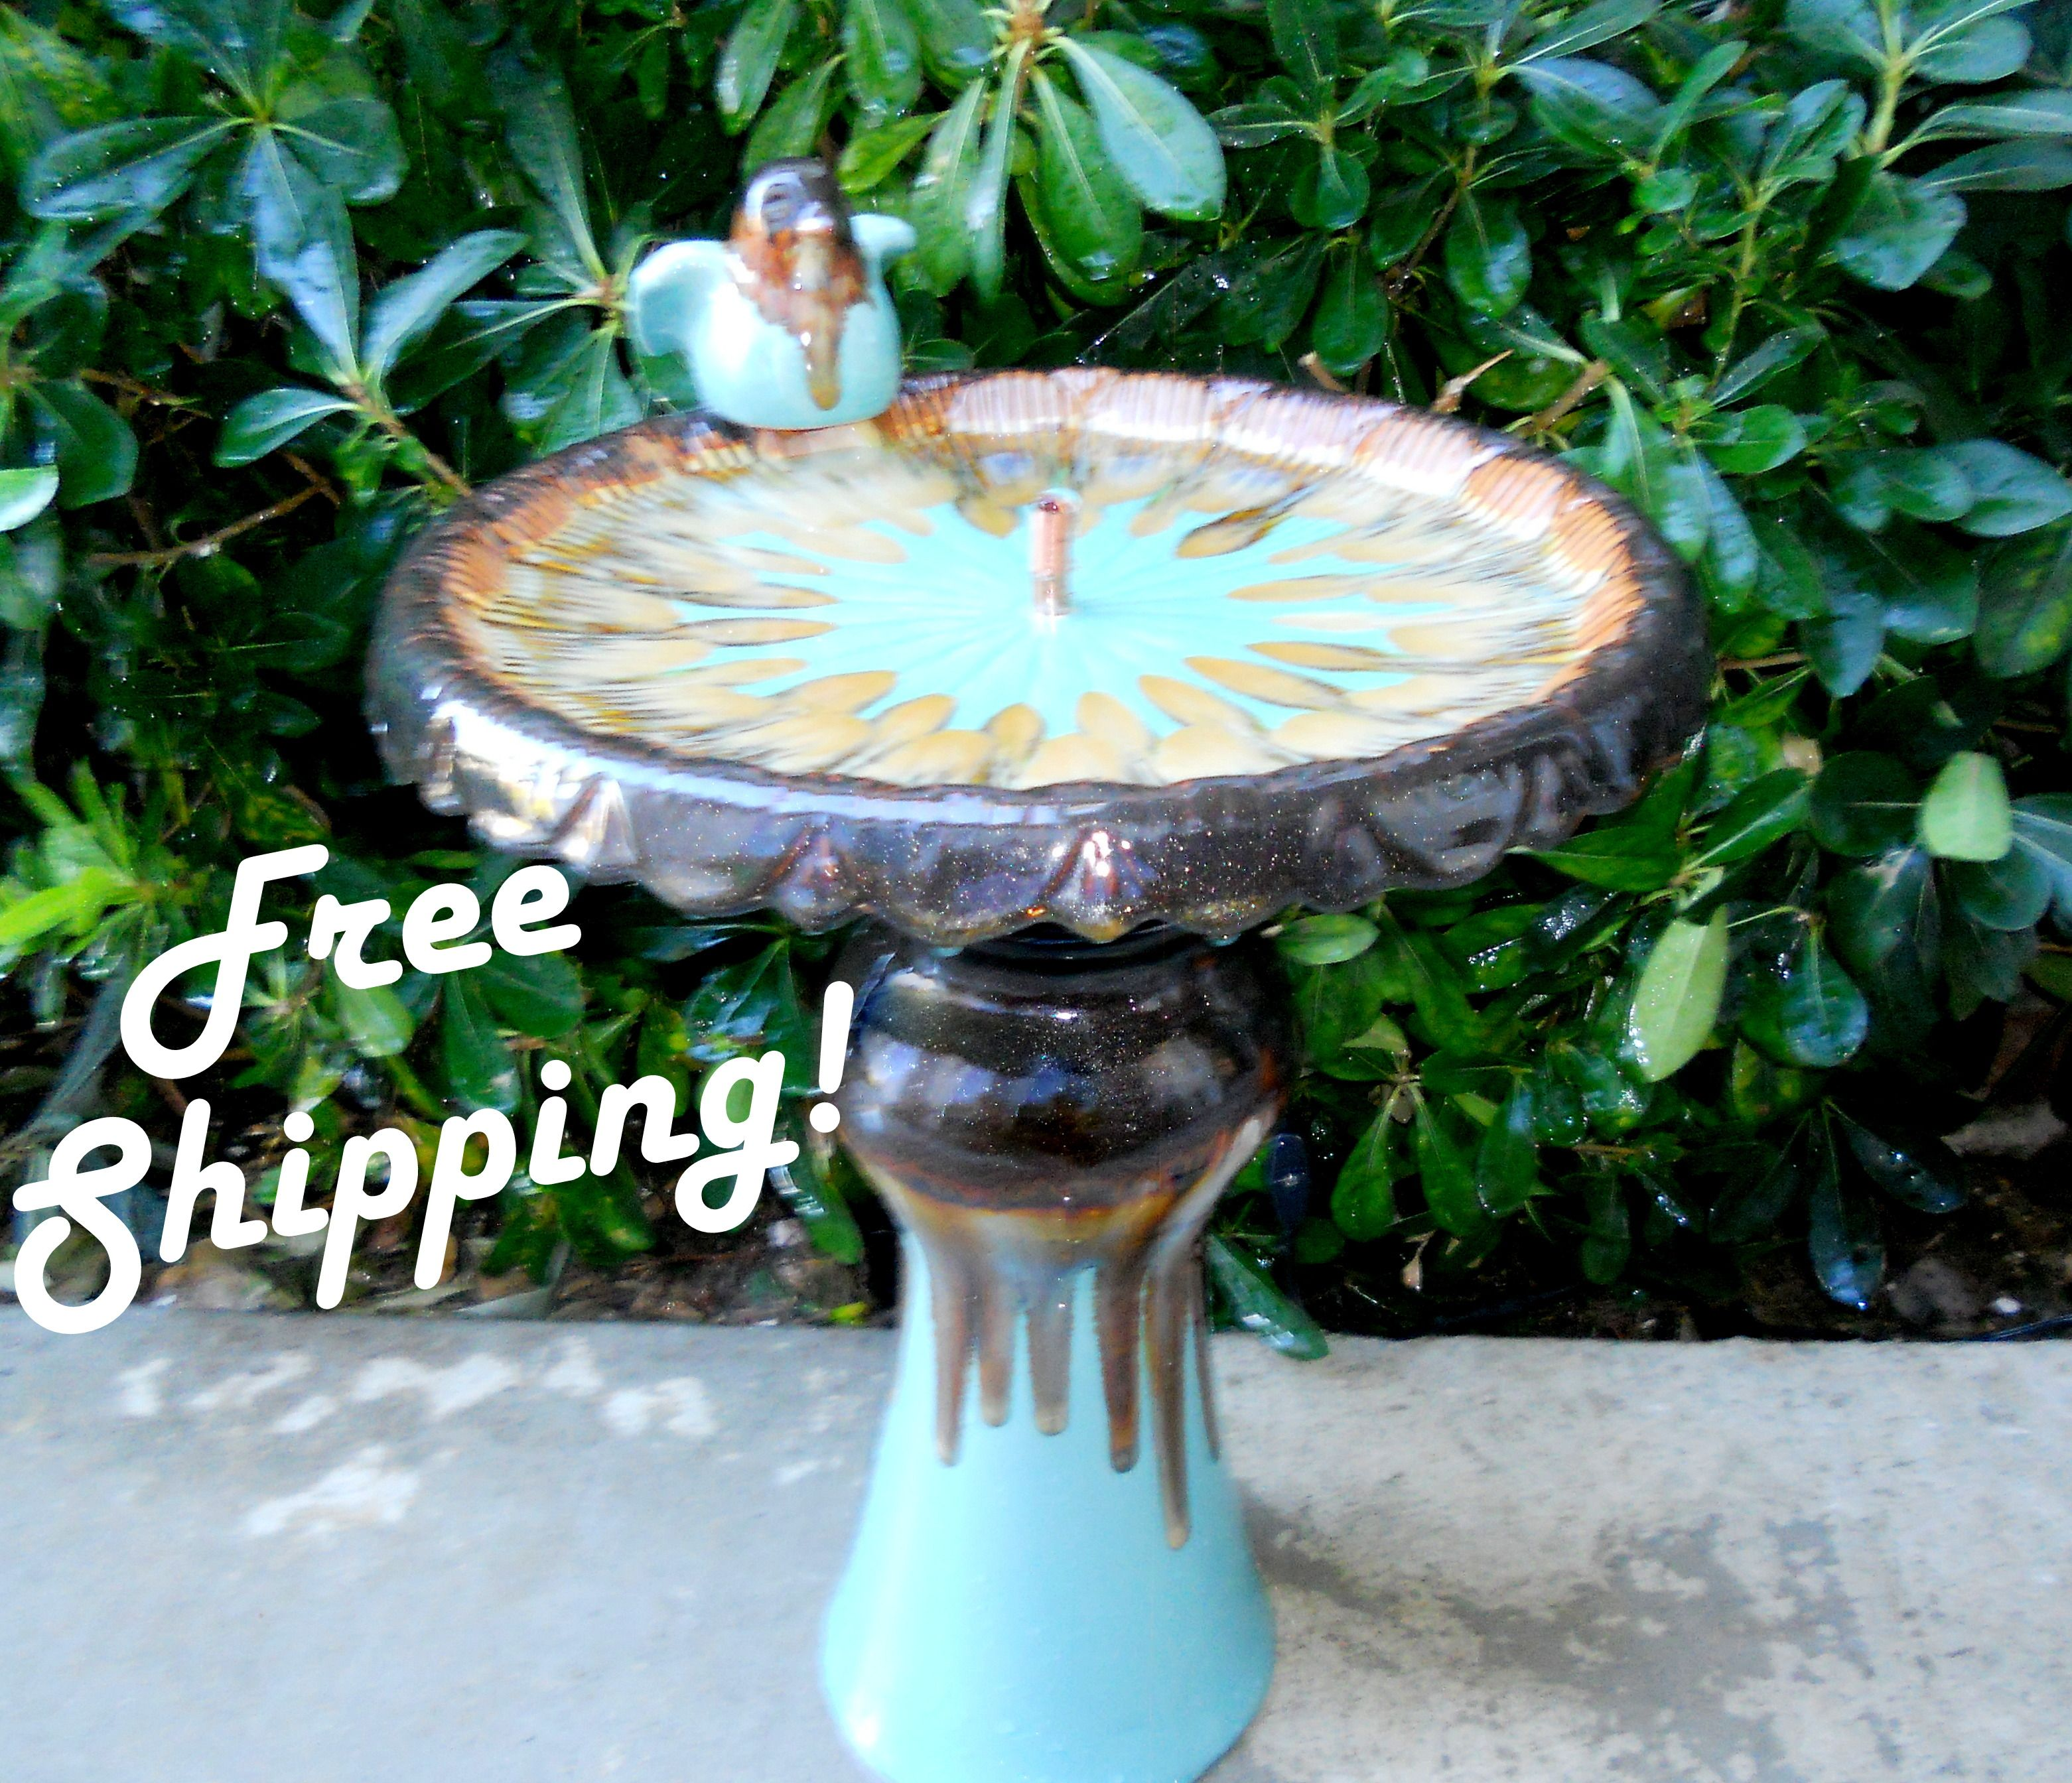 bird bath pedestal fountain in turquoise and brown